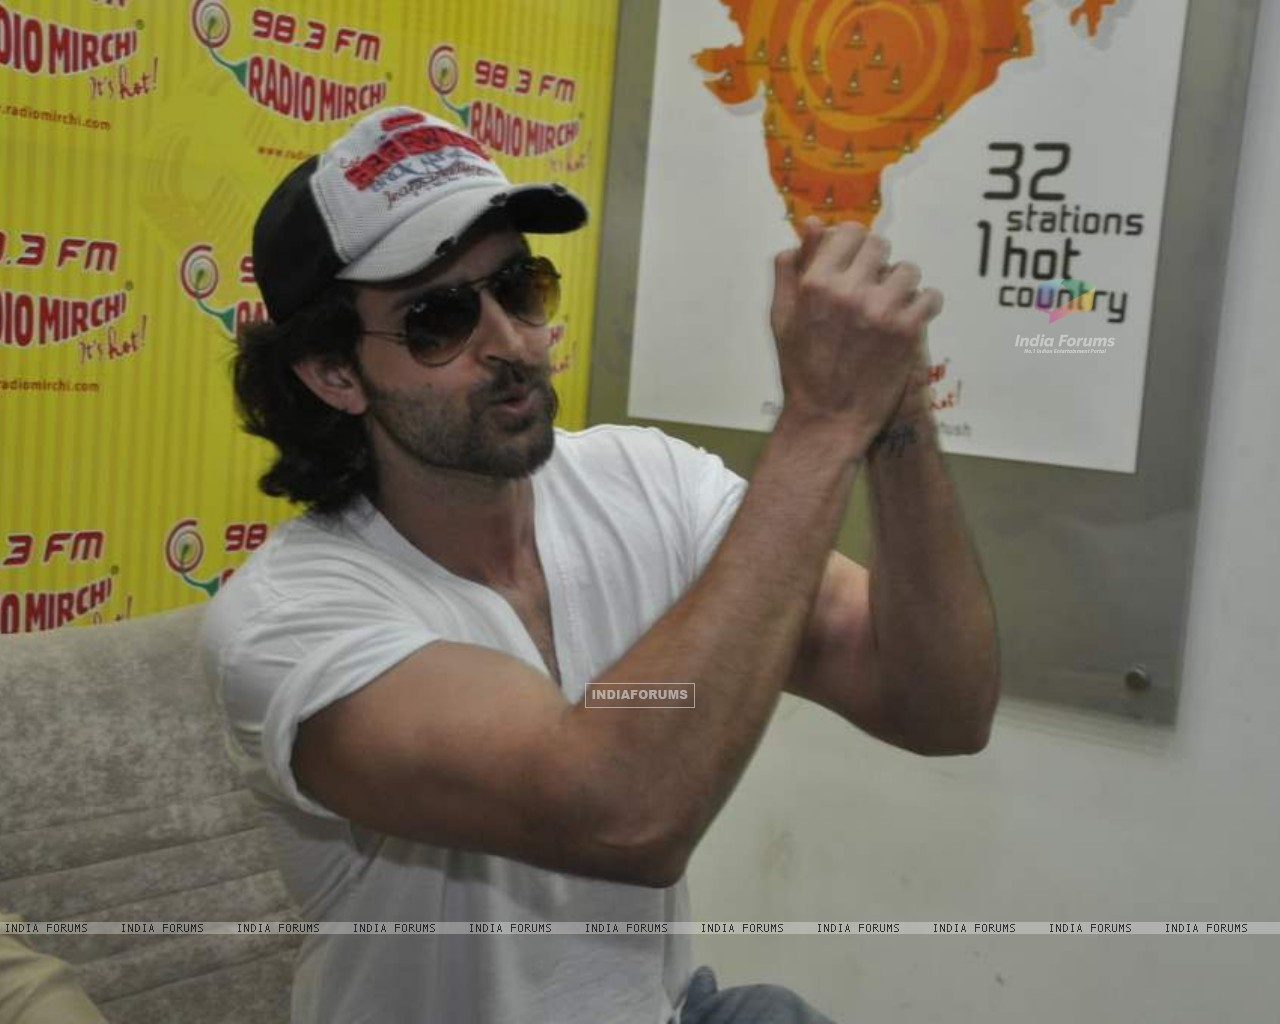 Hrithik Roshan promote kites on Radio Mirchi at Parel (86367) size:1280x1024